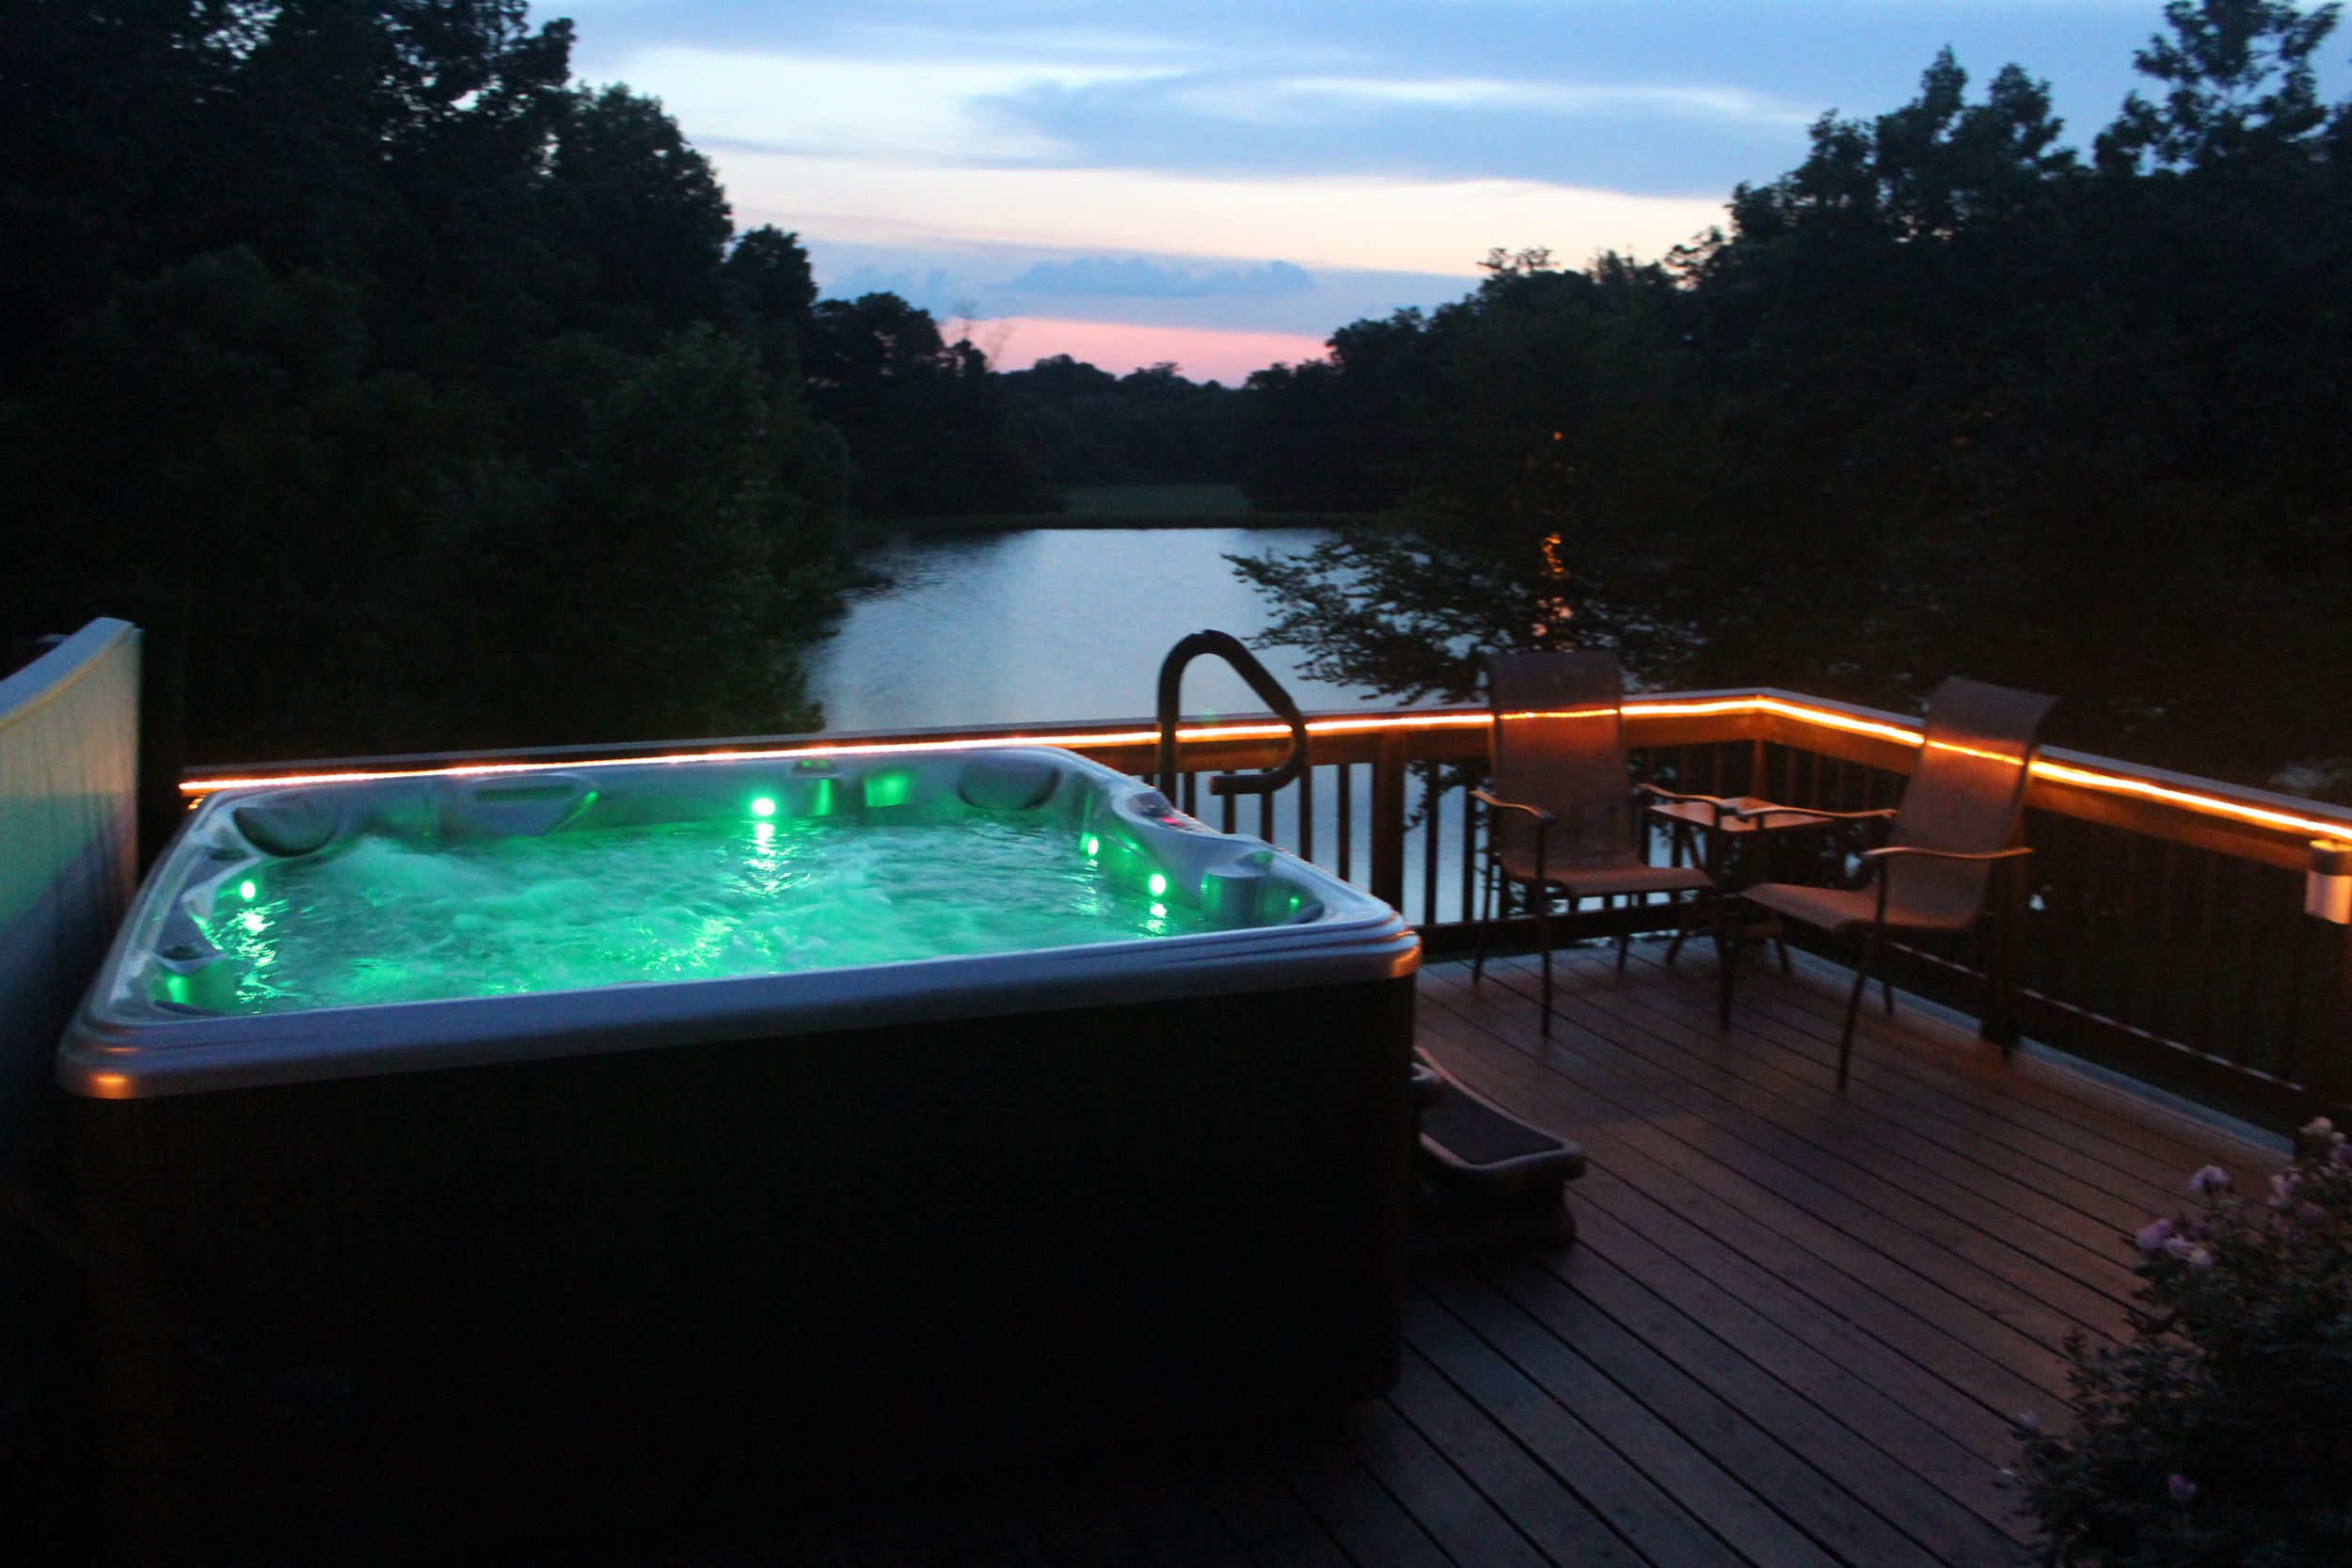 Doc S Lakeside Cabin Shawnee National Forest Lakeside Cabin Romantic Vacations